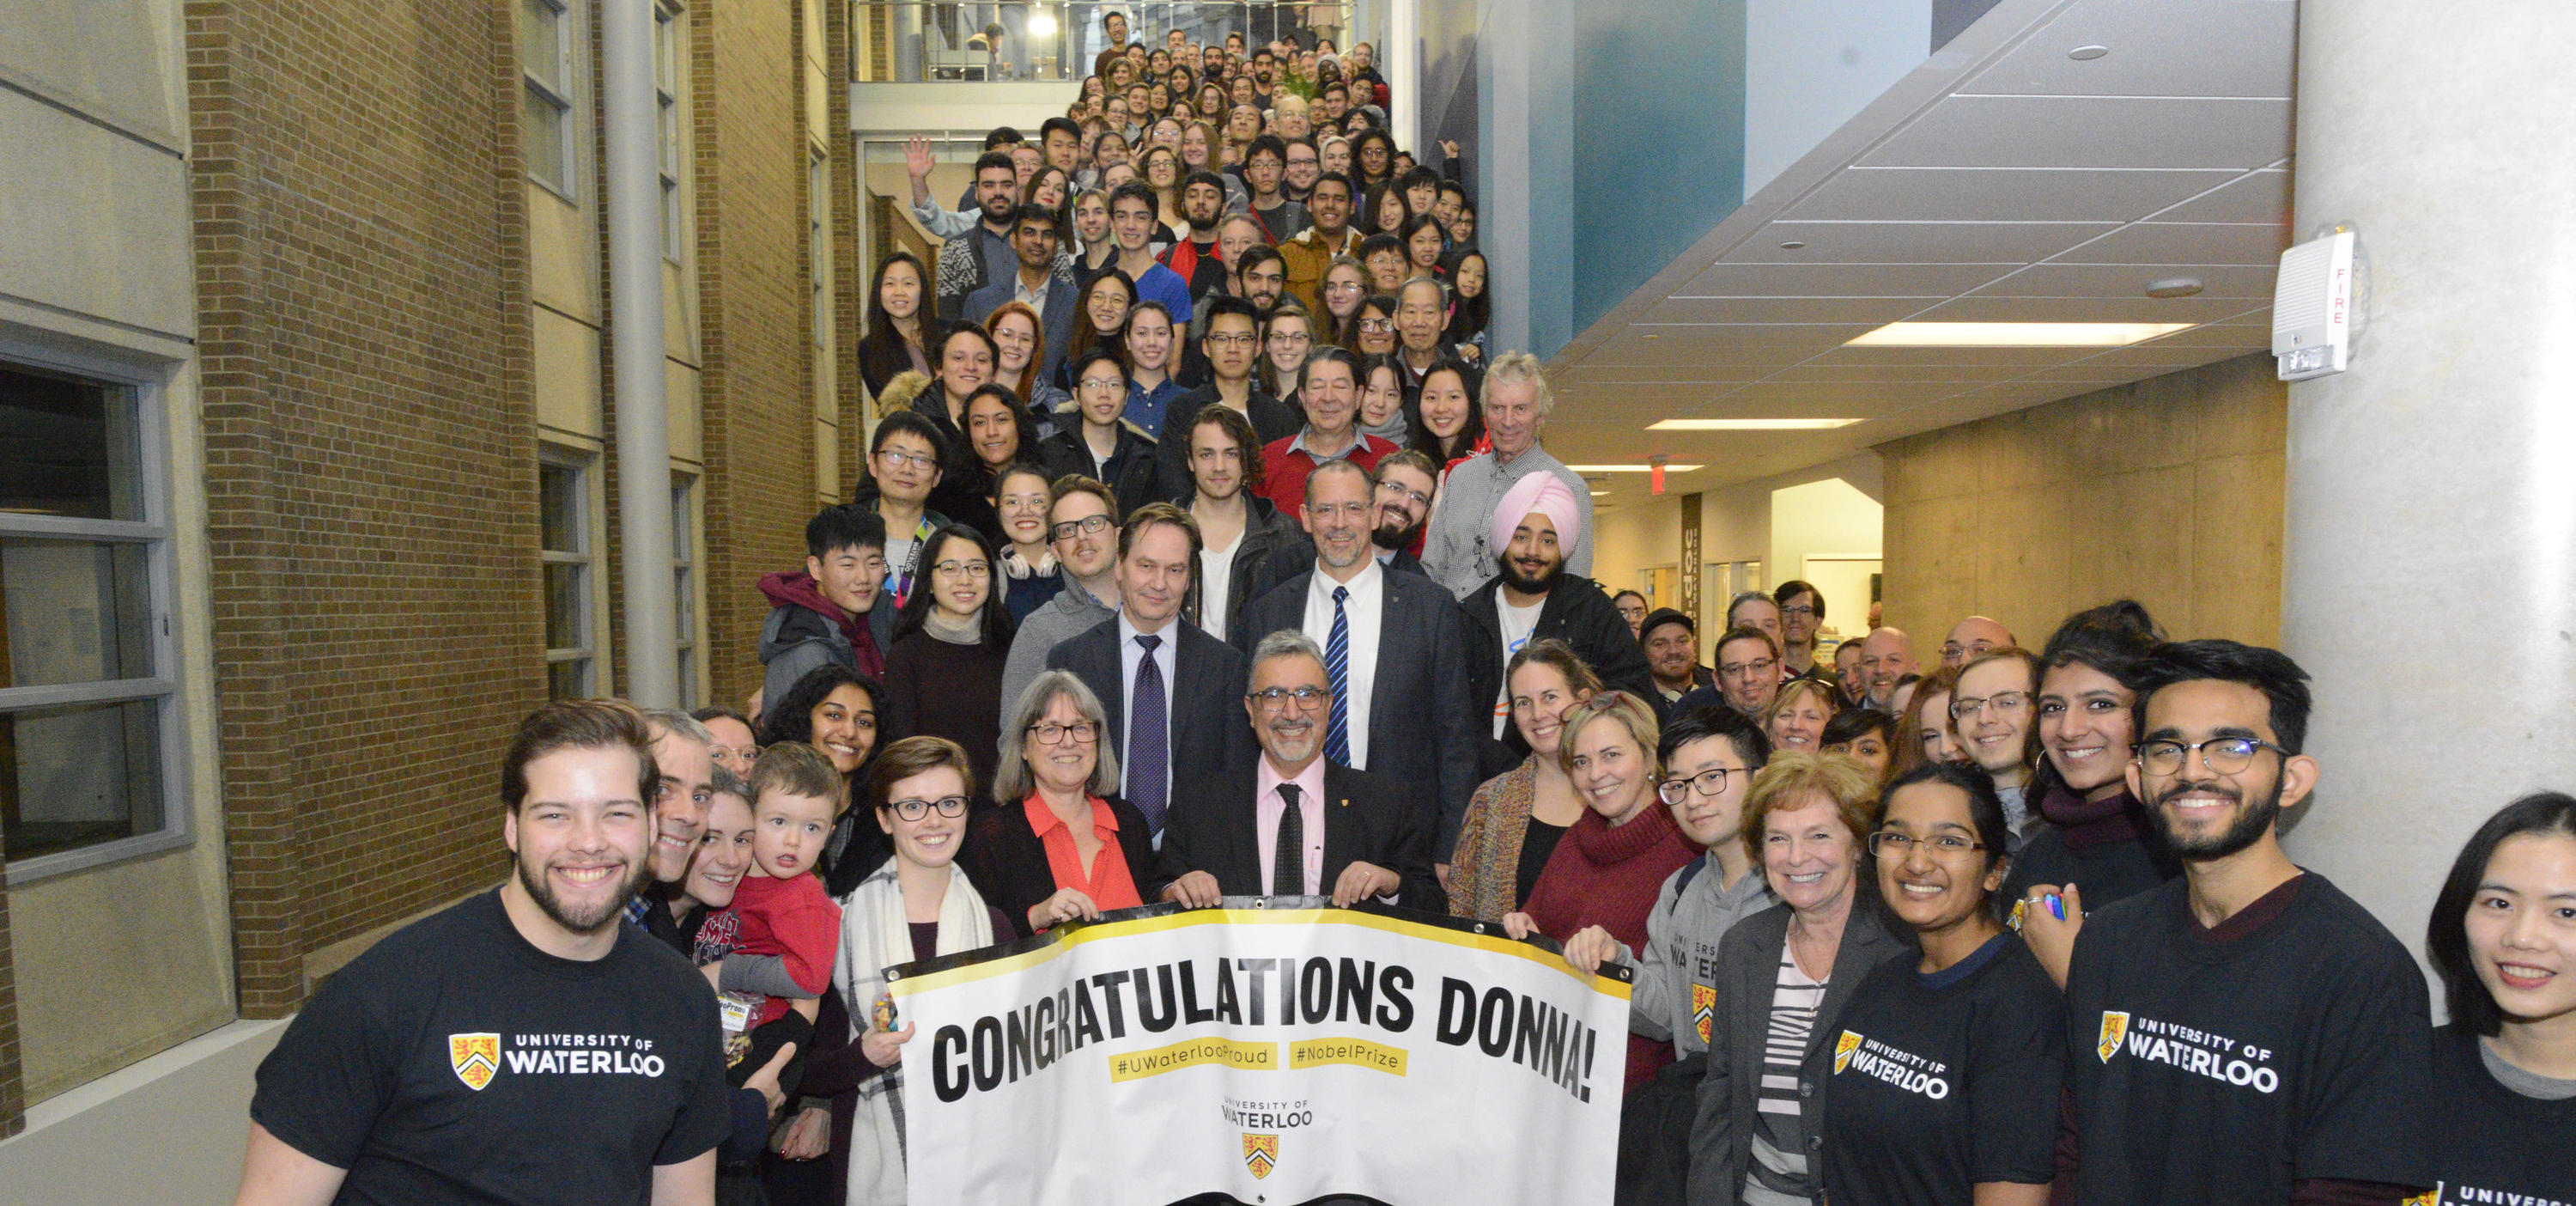 A group photo of attendees with Donna Strickland and the UW President holding a Congratulations Donna banner.